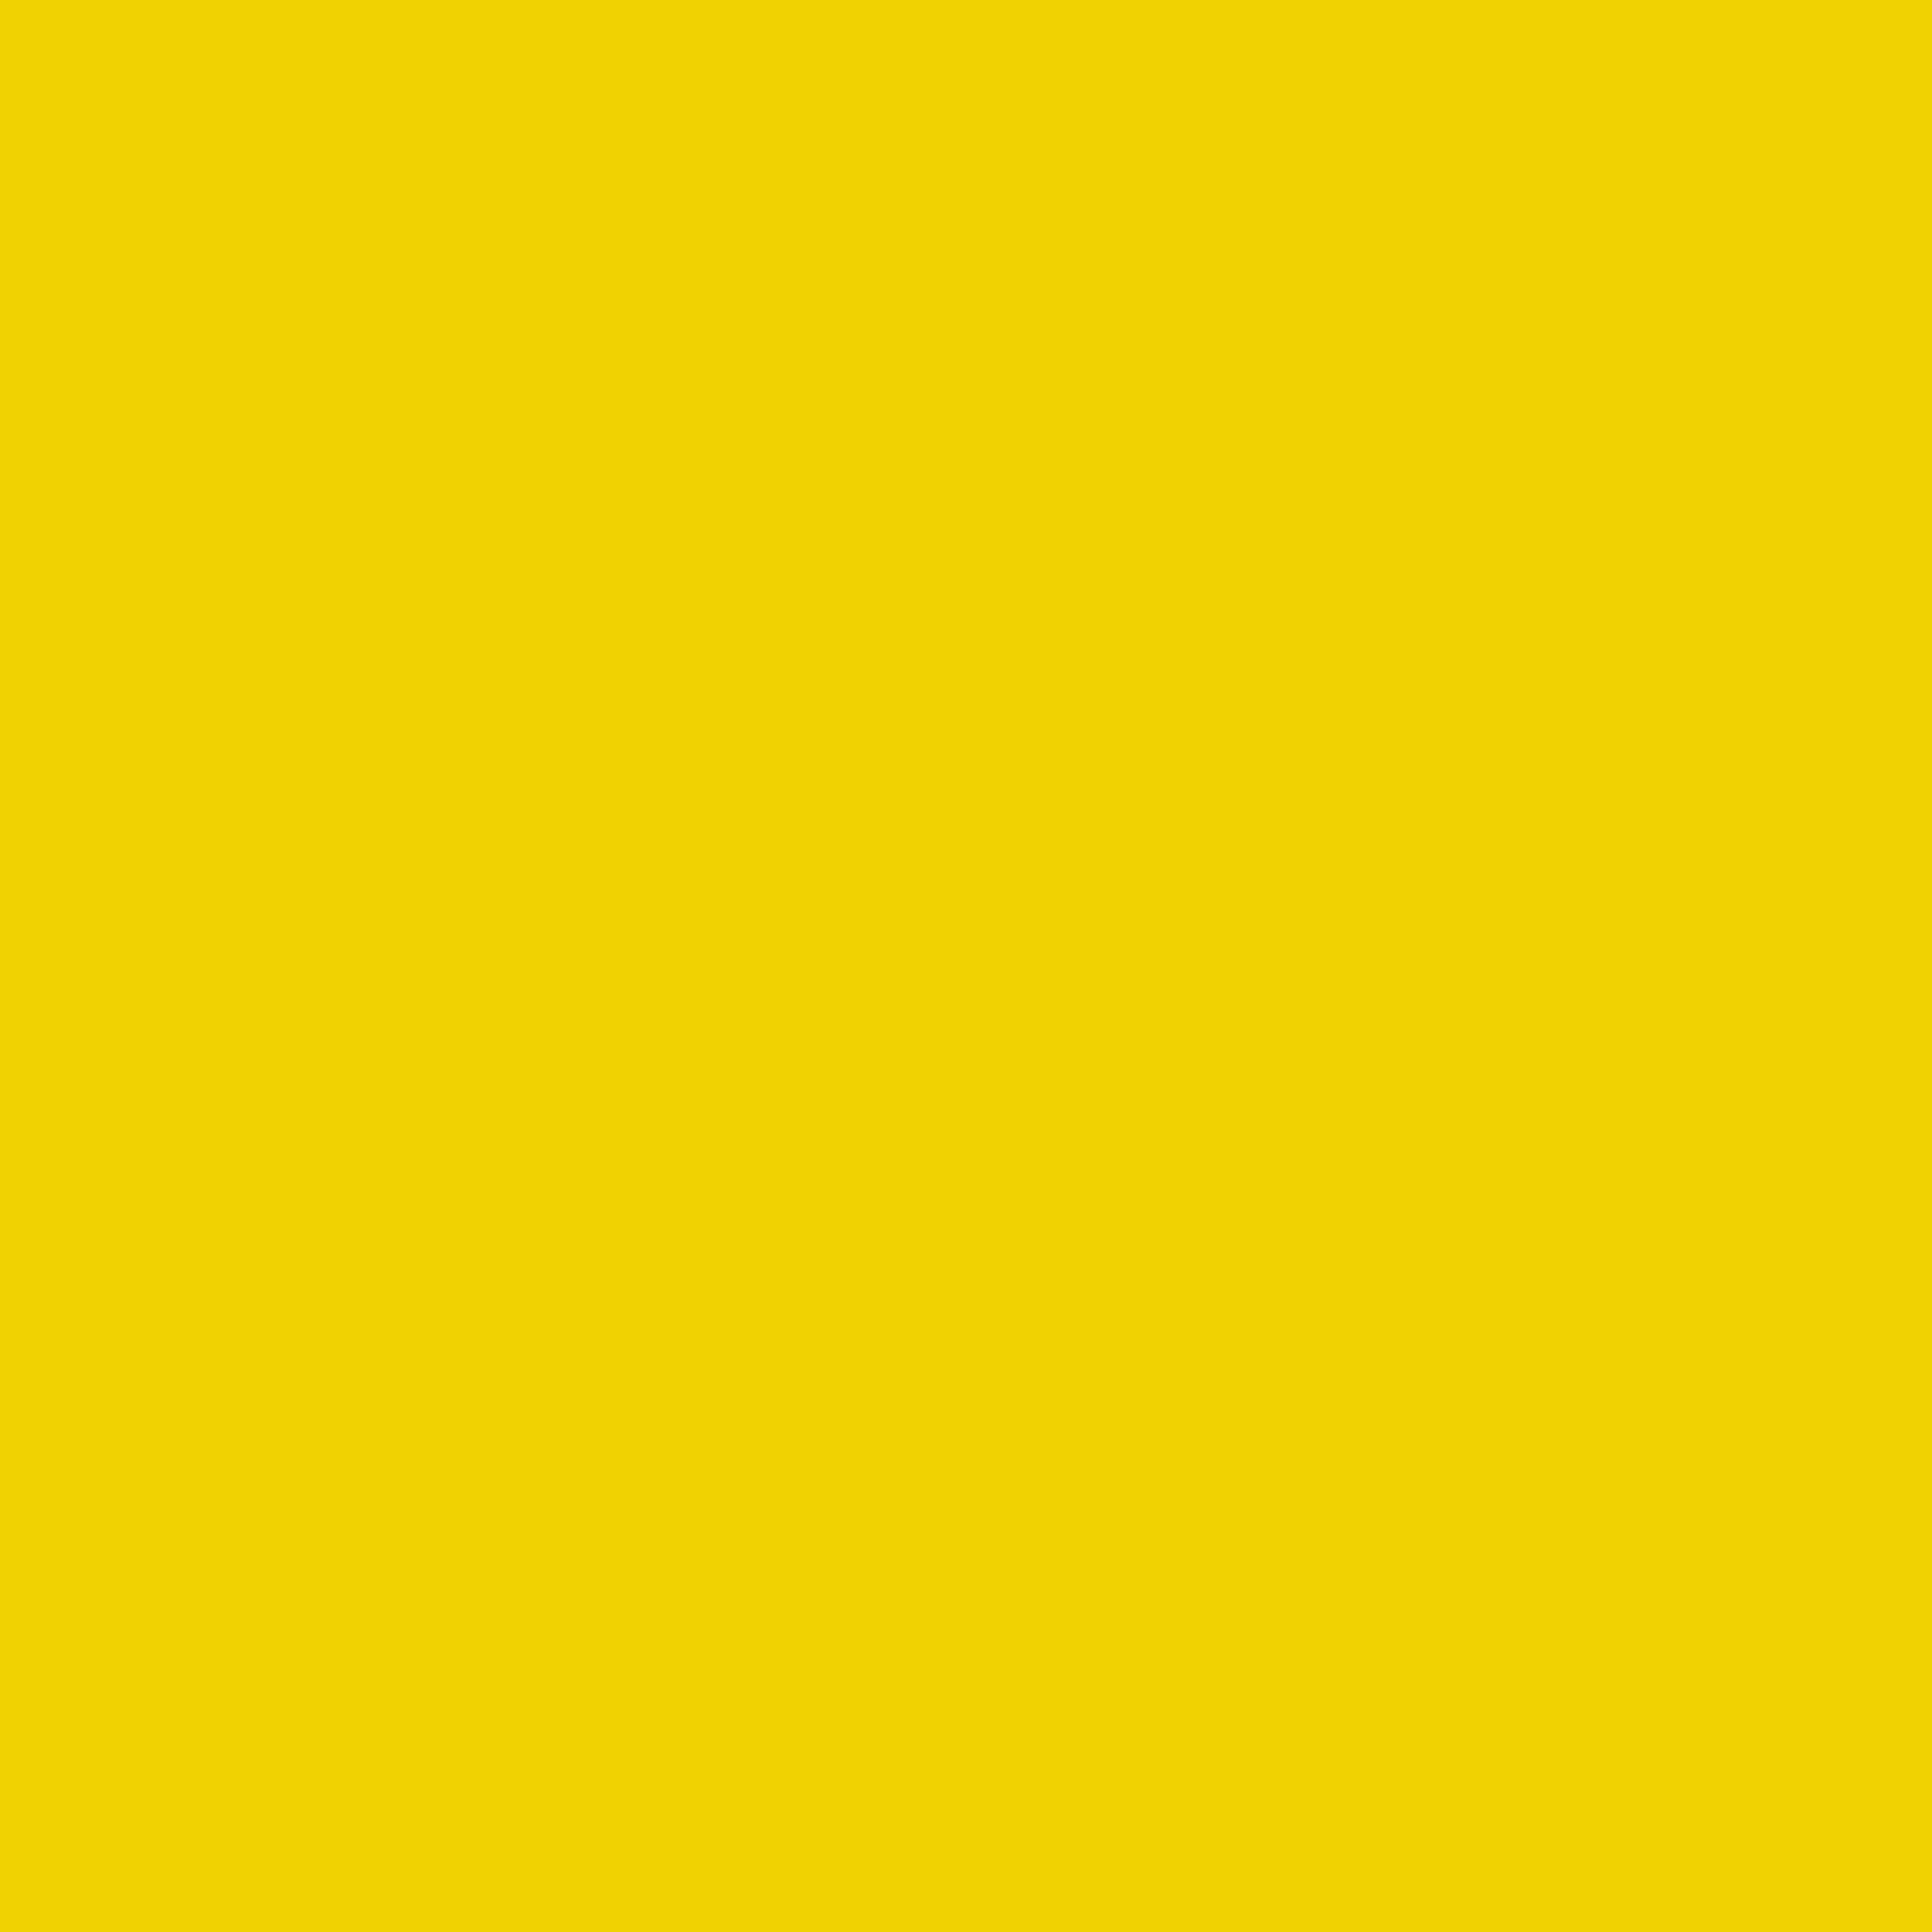 3600x3600 Safety Yellow Solid Color Background